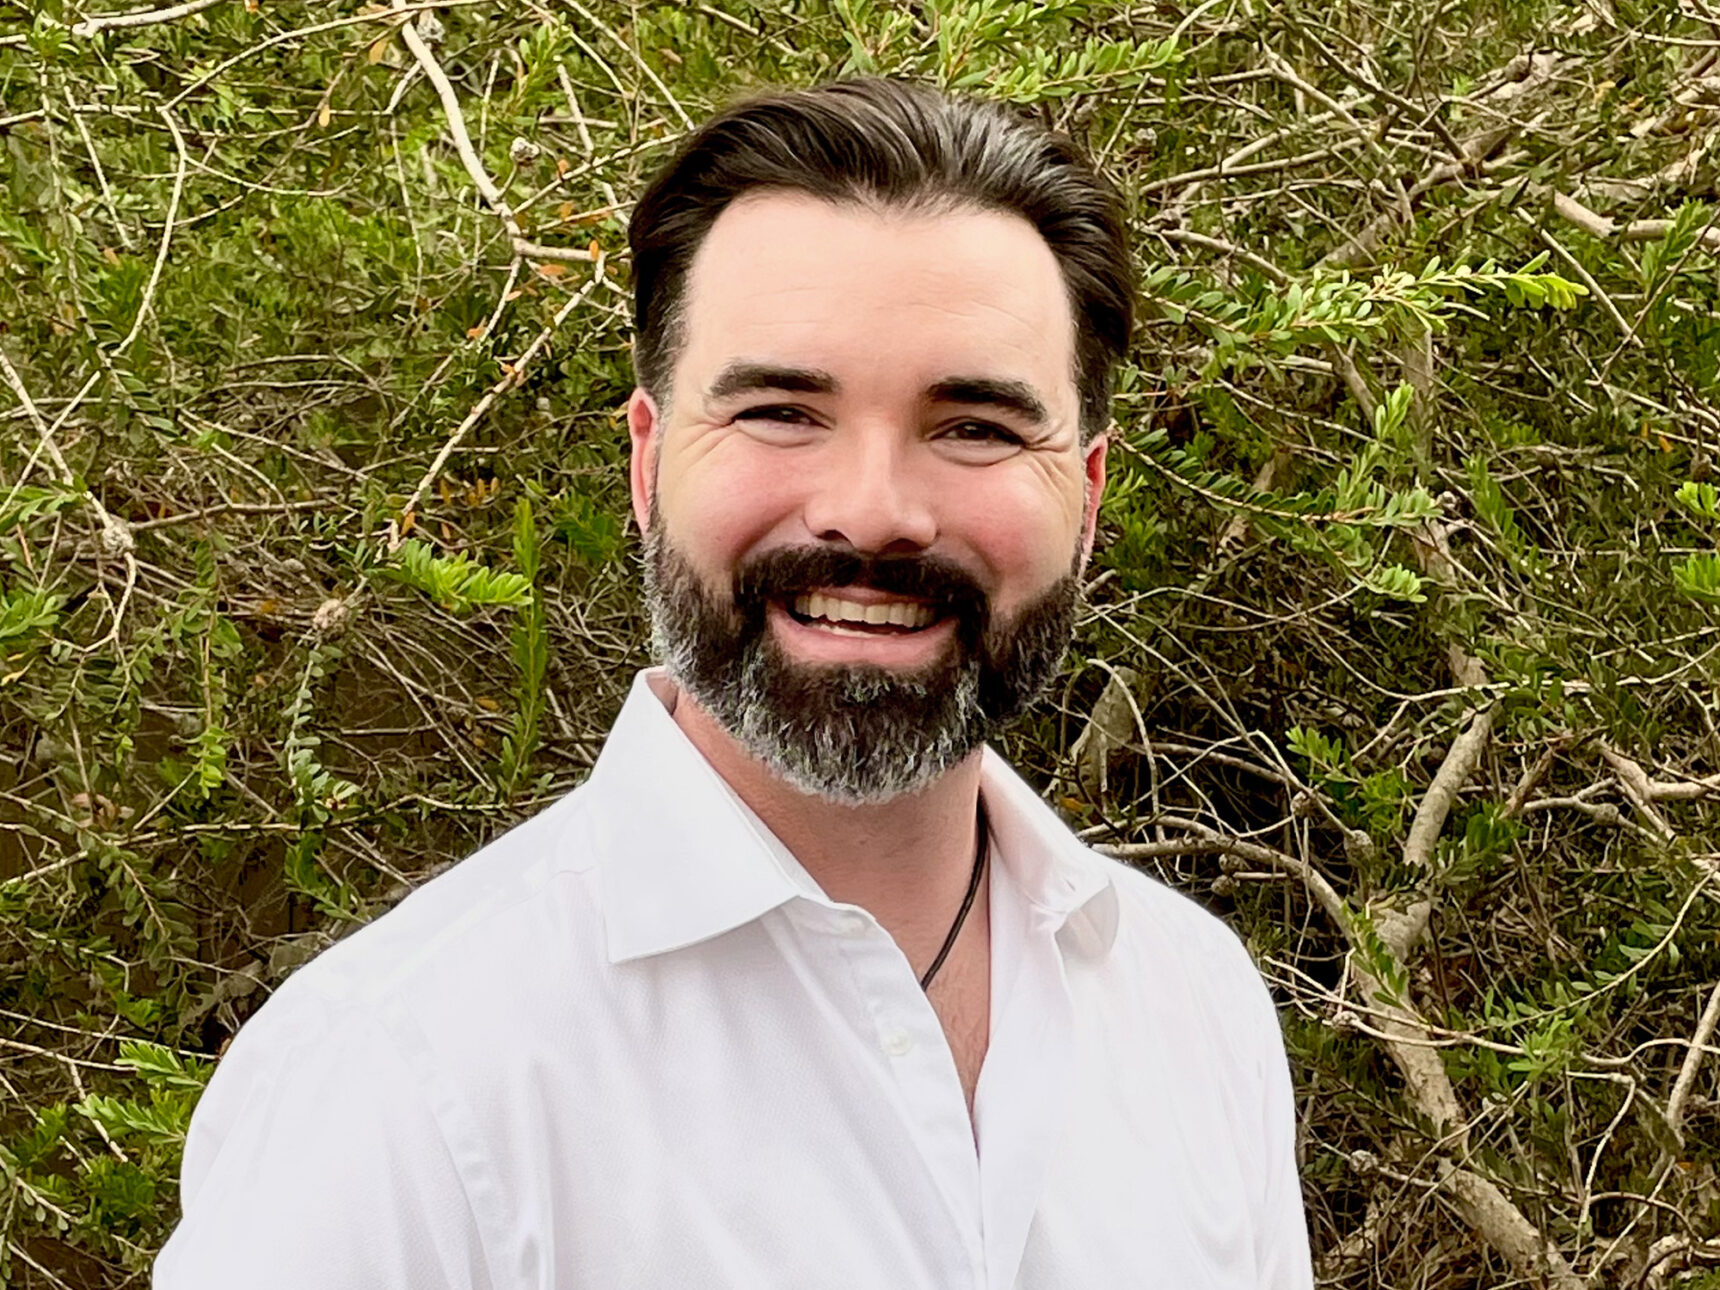 Photo of Bradley Voytek, an associate professor of cognitive science and data science at the University of California, San Diego.